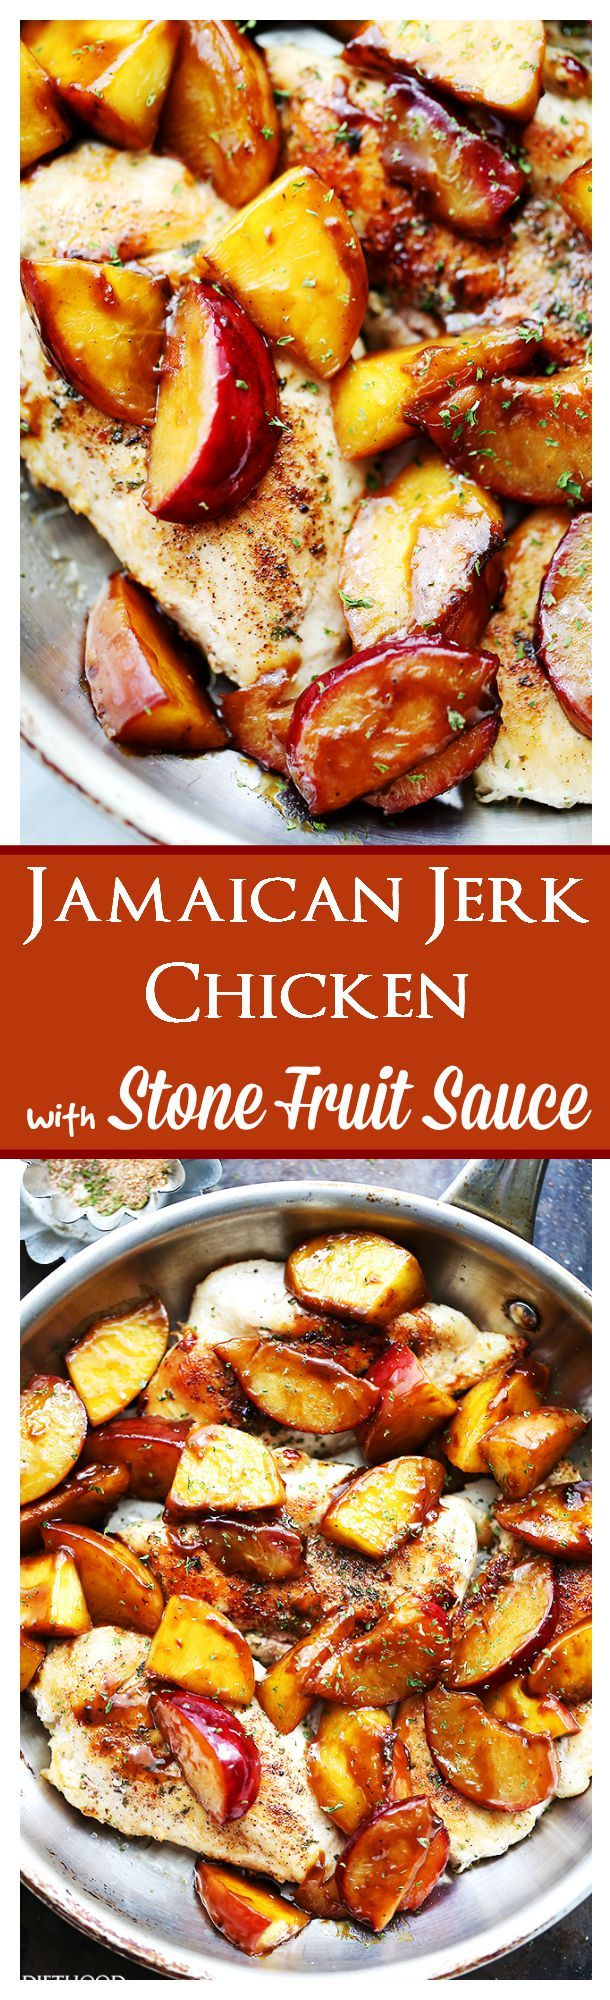 Jamaican Jerk Chicken with Stone Fruit Sauce   www.diethood.com   Easy to make, 30-minute meal including chicken rubbed with homemade jerk seasoning and topped with an incredibly delicious peaches and plums sauce.